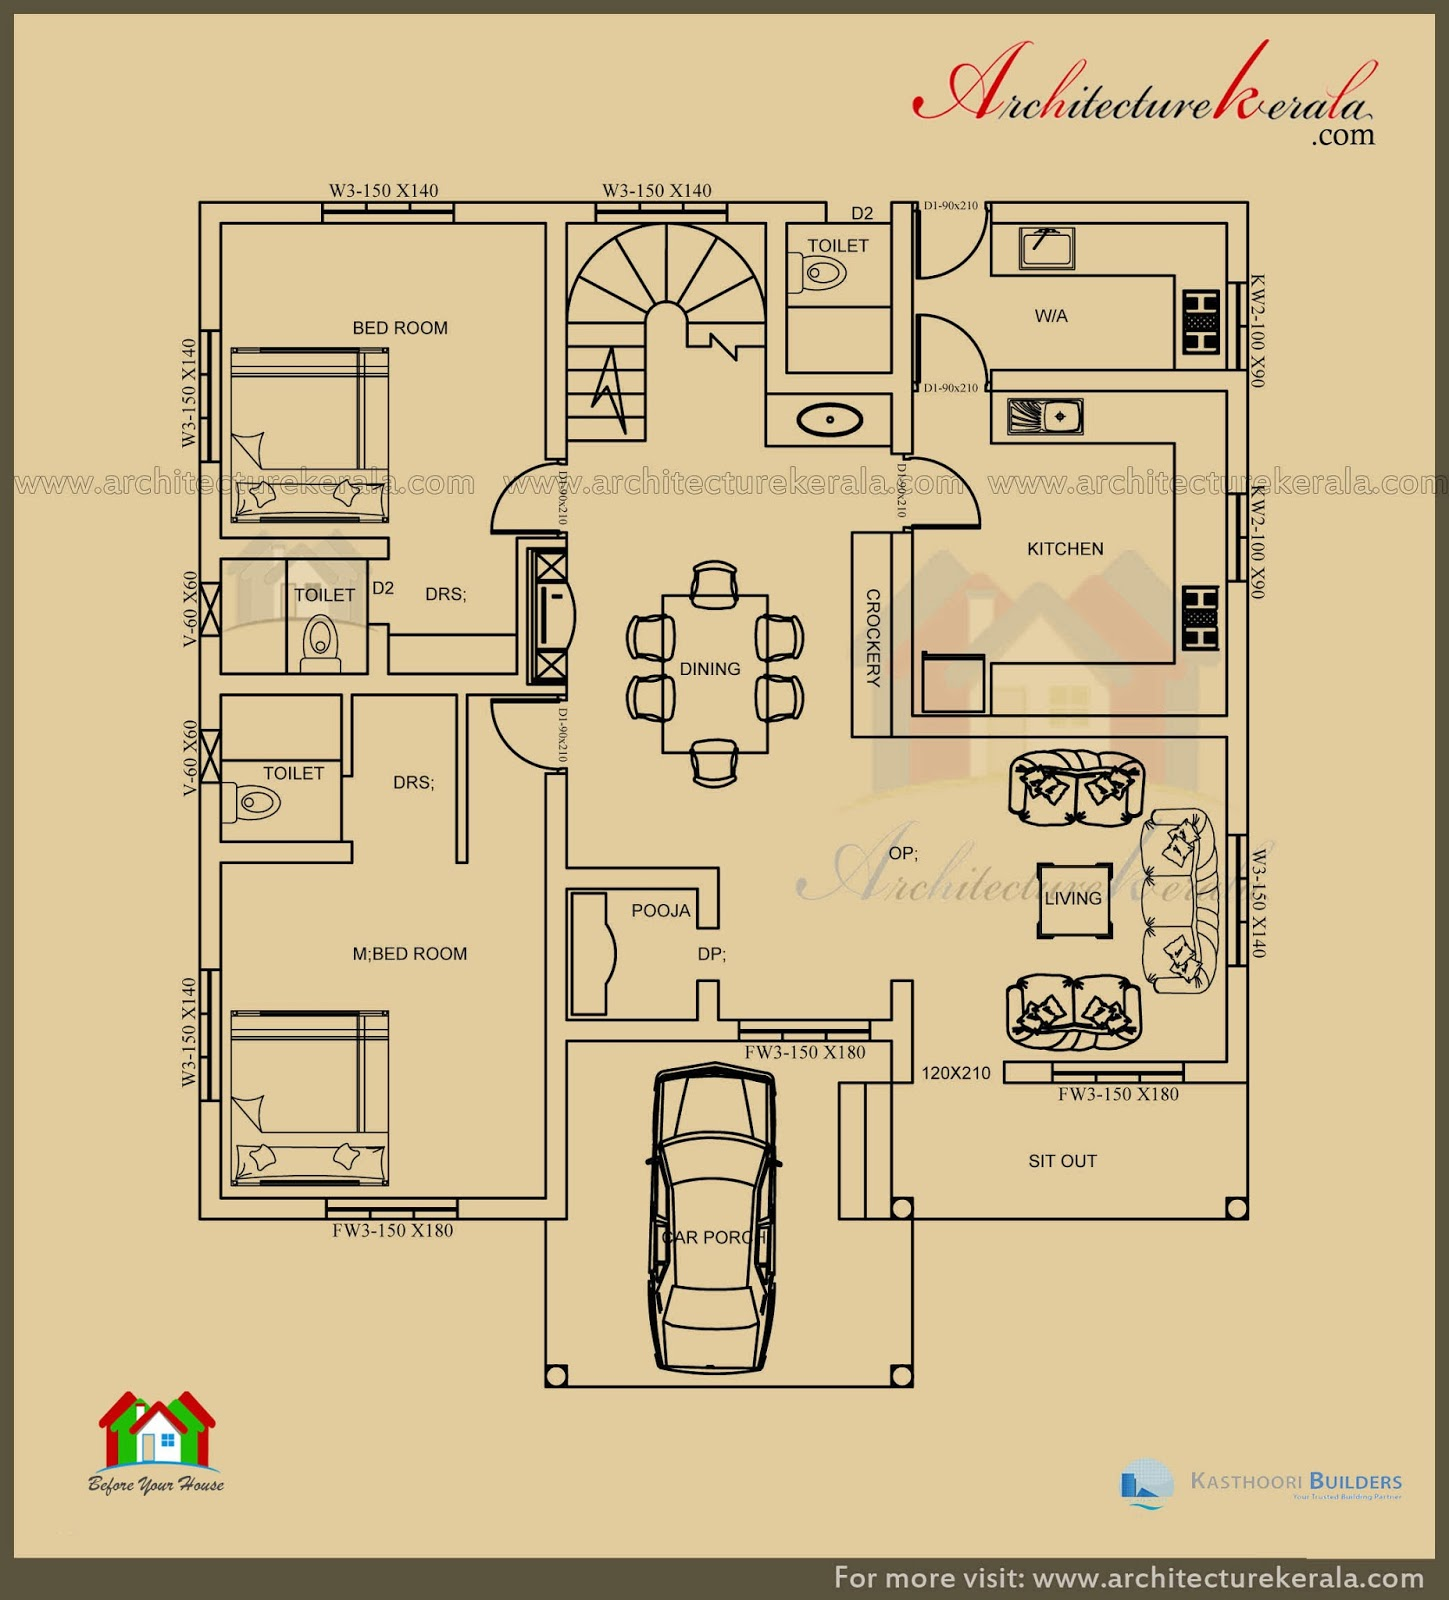 3bedroom home plan small 3 bedroom bungalow house plans small 3 3 bedroom house plans kerala double floor bedroomthree bedroom house plans kerala style bedroom home plans